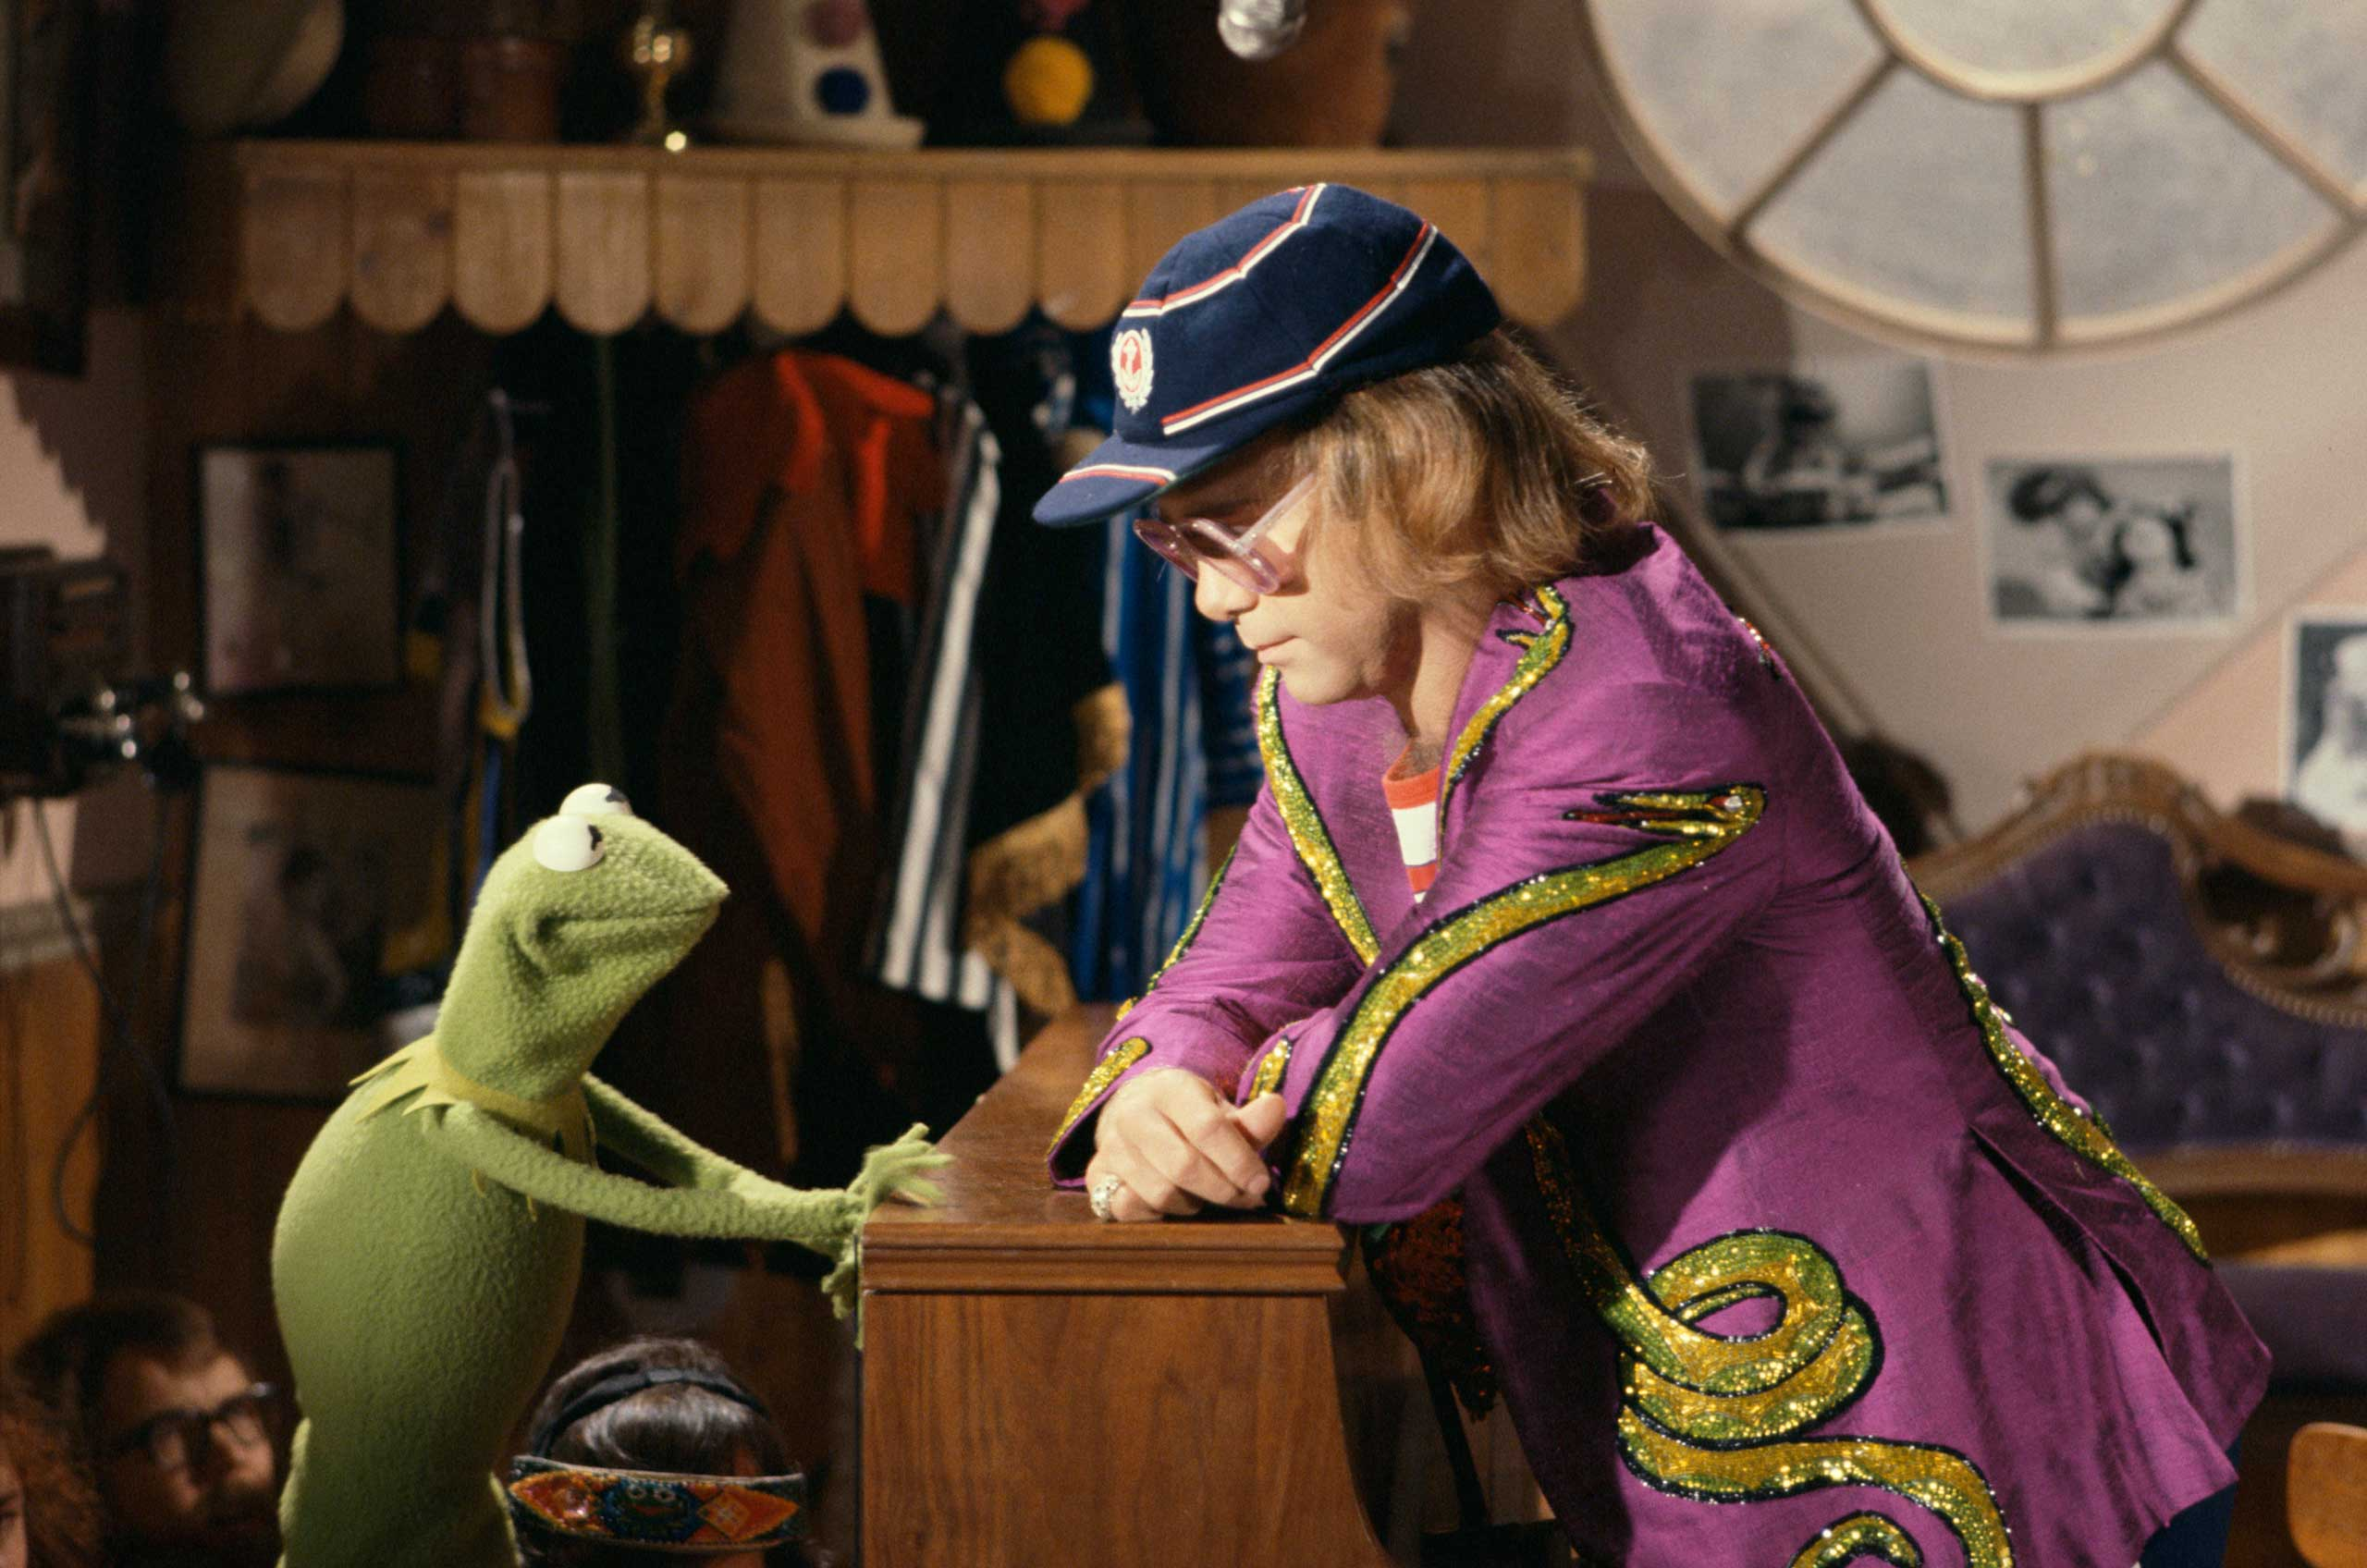 <b>Elton John</b> Photographed for TV Times in 1977.                                   Having already achieved superstardom on both sides of the Atlantic, Elton reaches the pinnacle of his career, appearing on <i>The Muppet Show</i> in Oct. 1977. But Kermit still has to persuade the reluctant rocker to perform his hit 'Benny and the Jets'.